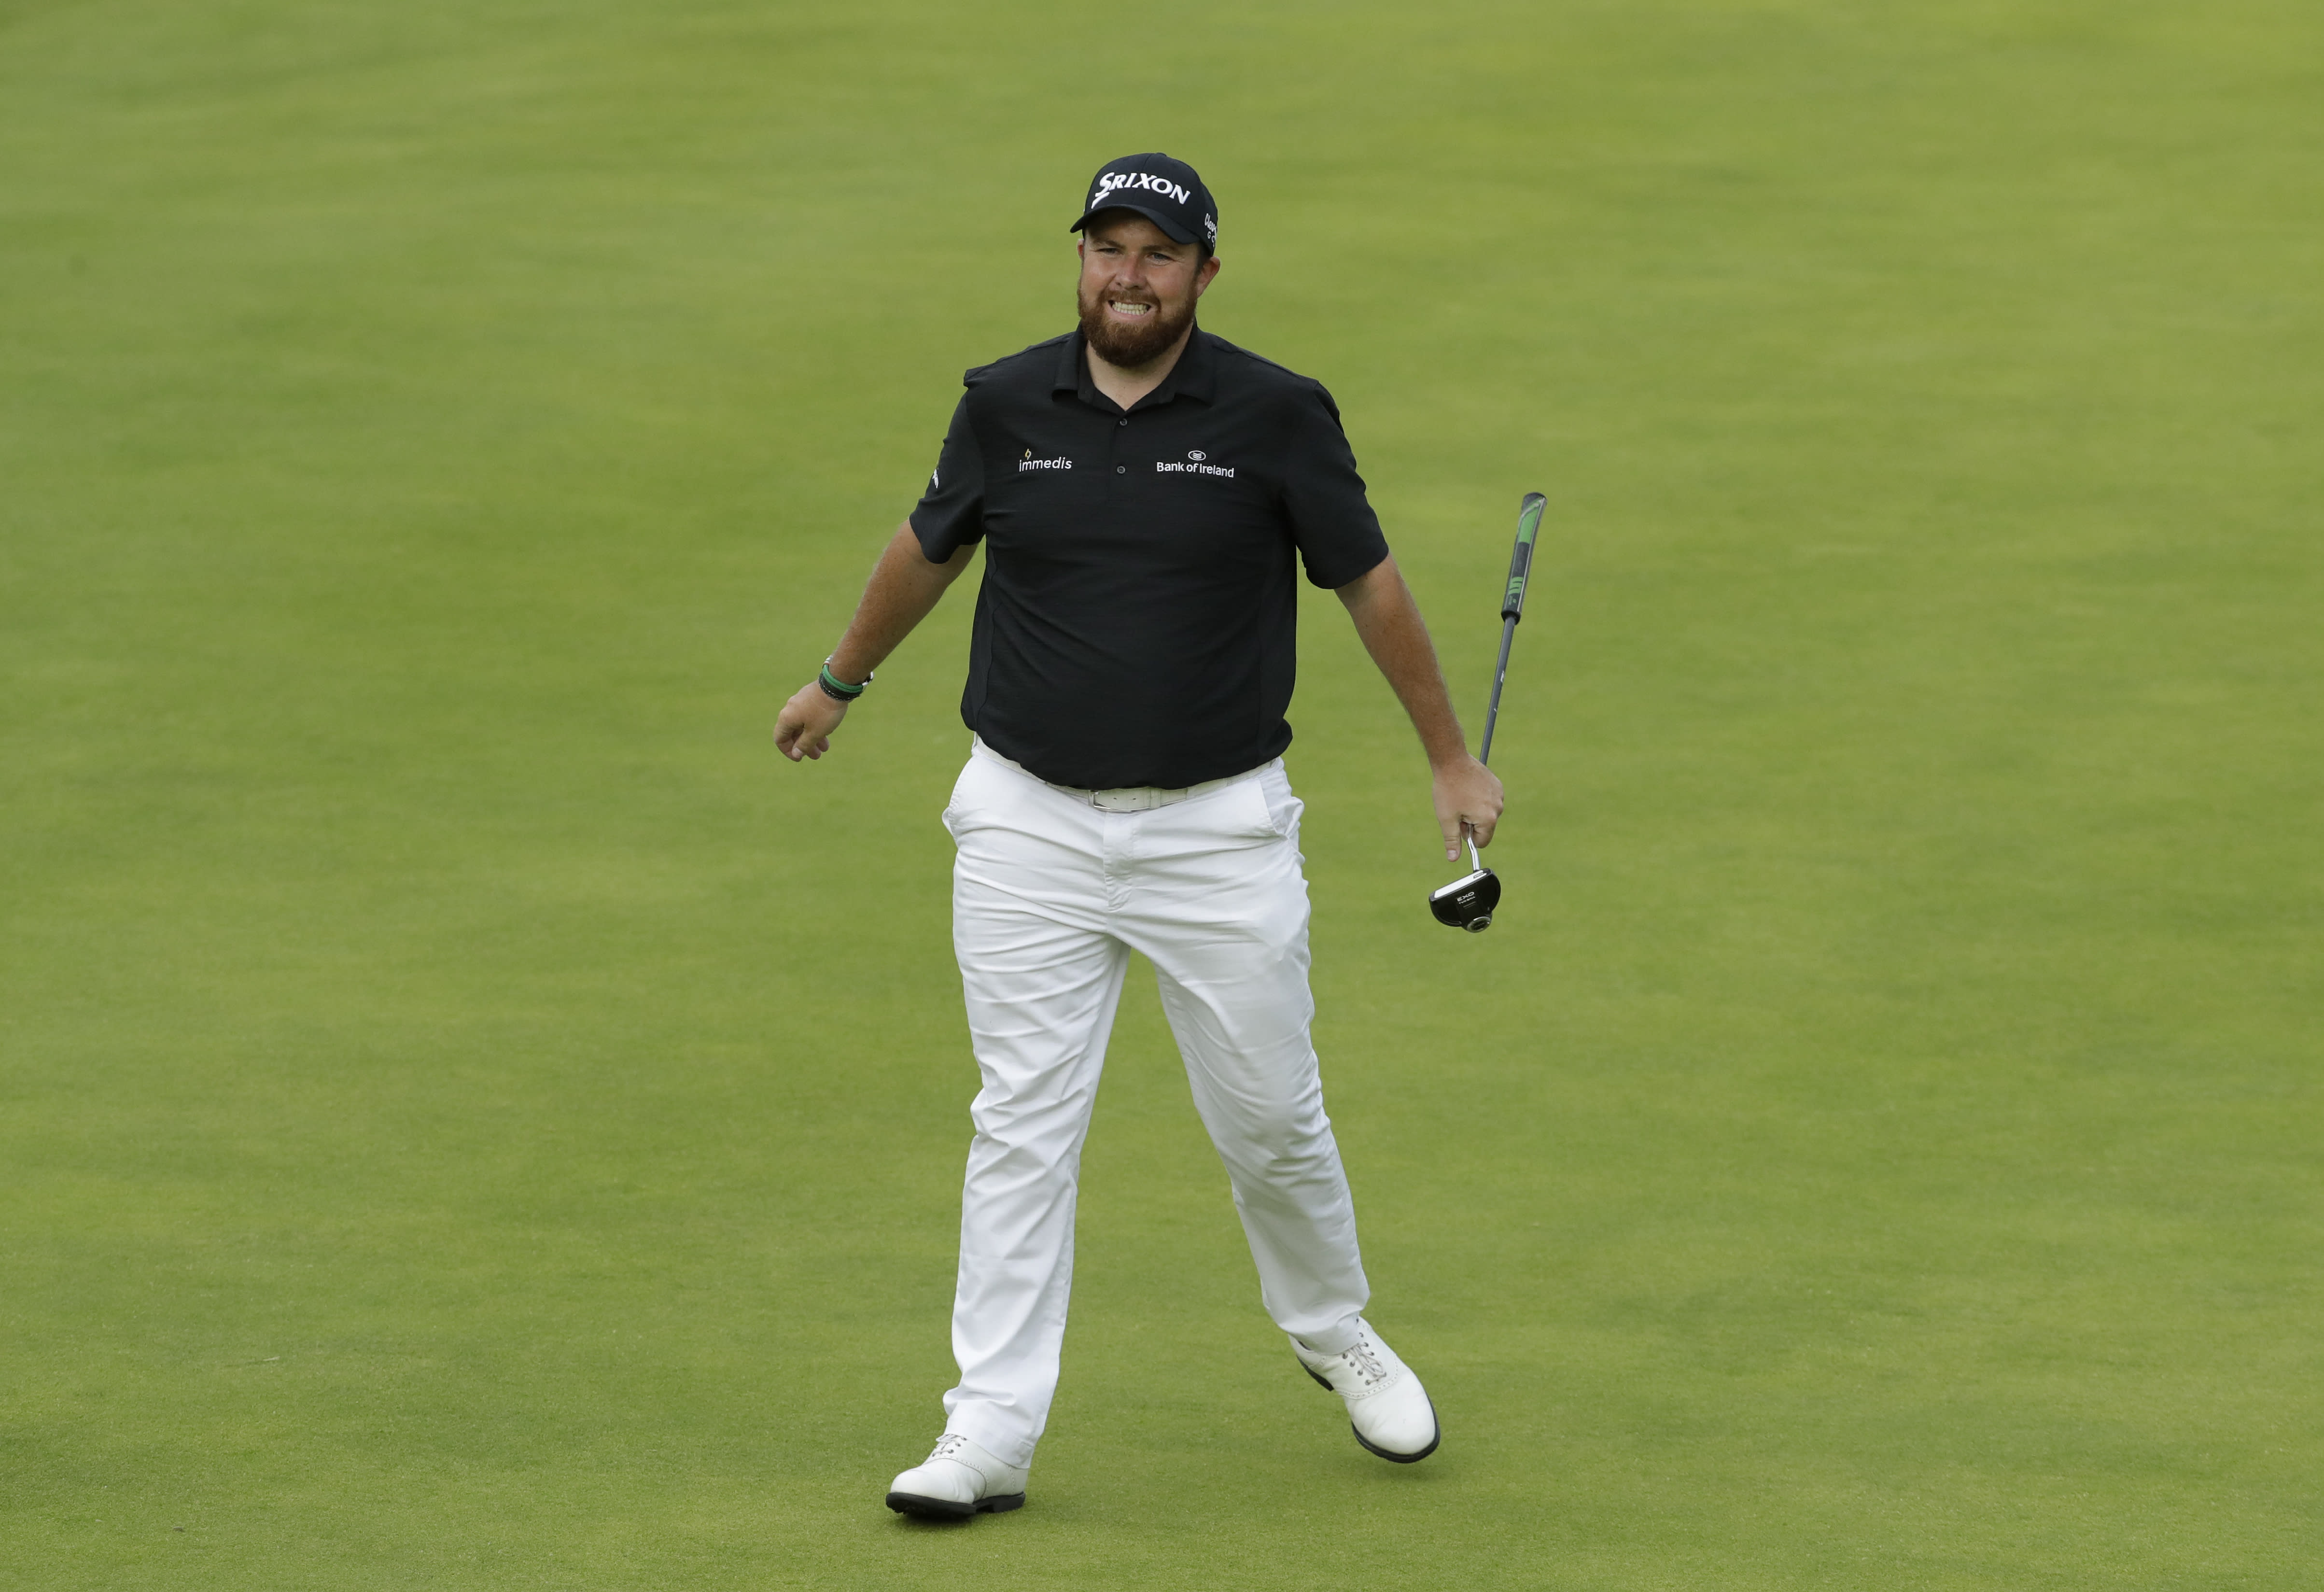 Ireland's Shane Lowry reacts after putting on the 18th green during the third round of the British Open Golf Championships at Royal Portrush in Northern Ireland, Saturday, July 20, 2019.(AP Photo/Matt Dunham)